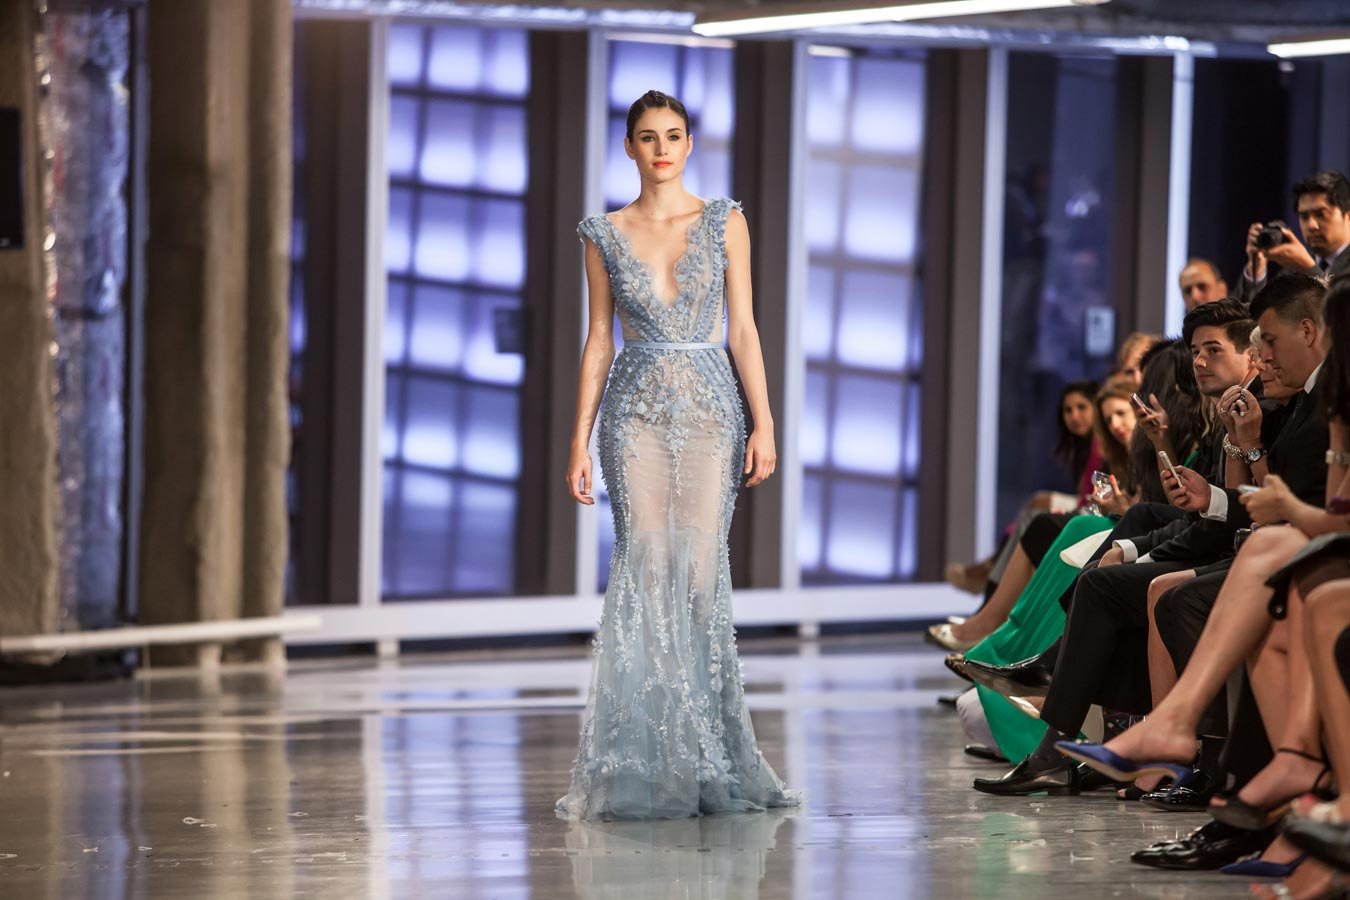 A model walks on a Ziad Nakad dress